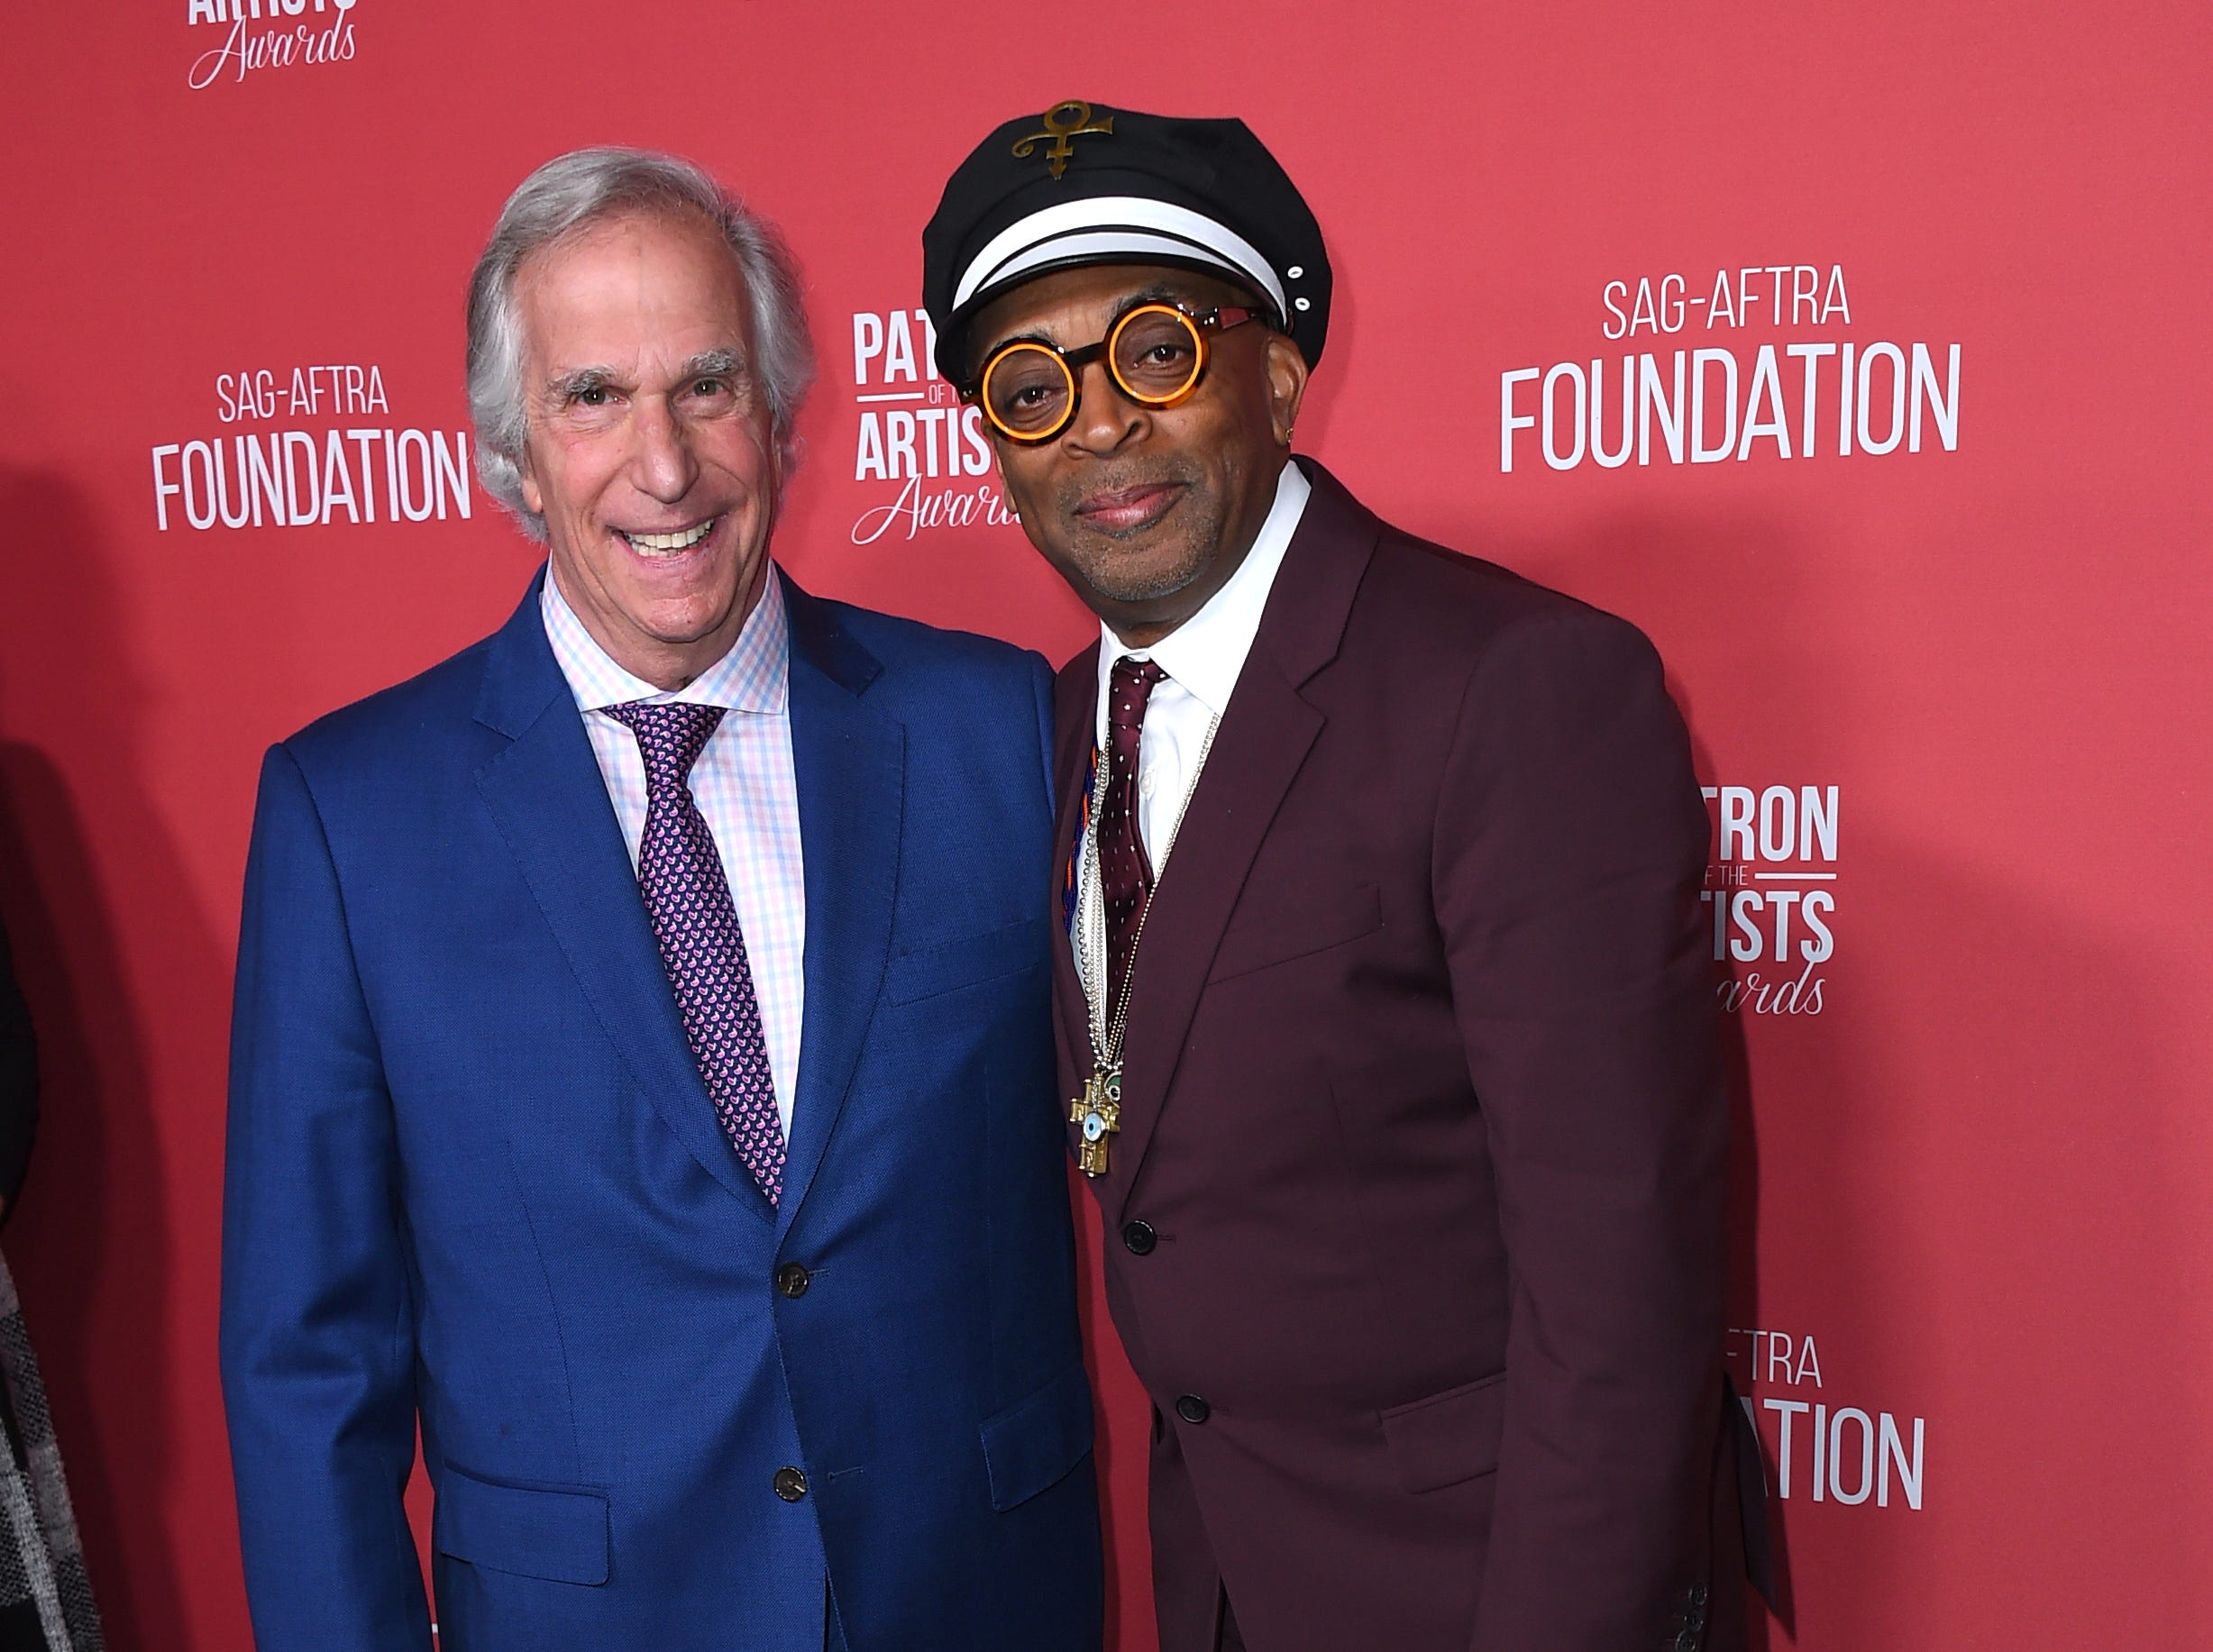 Henry Winkler, left, and Spike Lee arrive at the Patron of the Artists Awards on Thursday, Nov. 8, 2018, at the Wallis Annenberg Center for the Performing Arts in Beverly Hills, Calif. (Photo by Jordan Strauss/Invision/AP) ORG XMIT: CAPM158